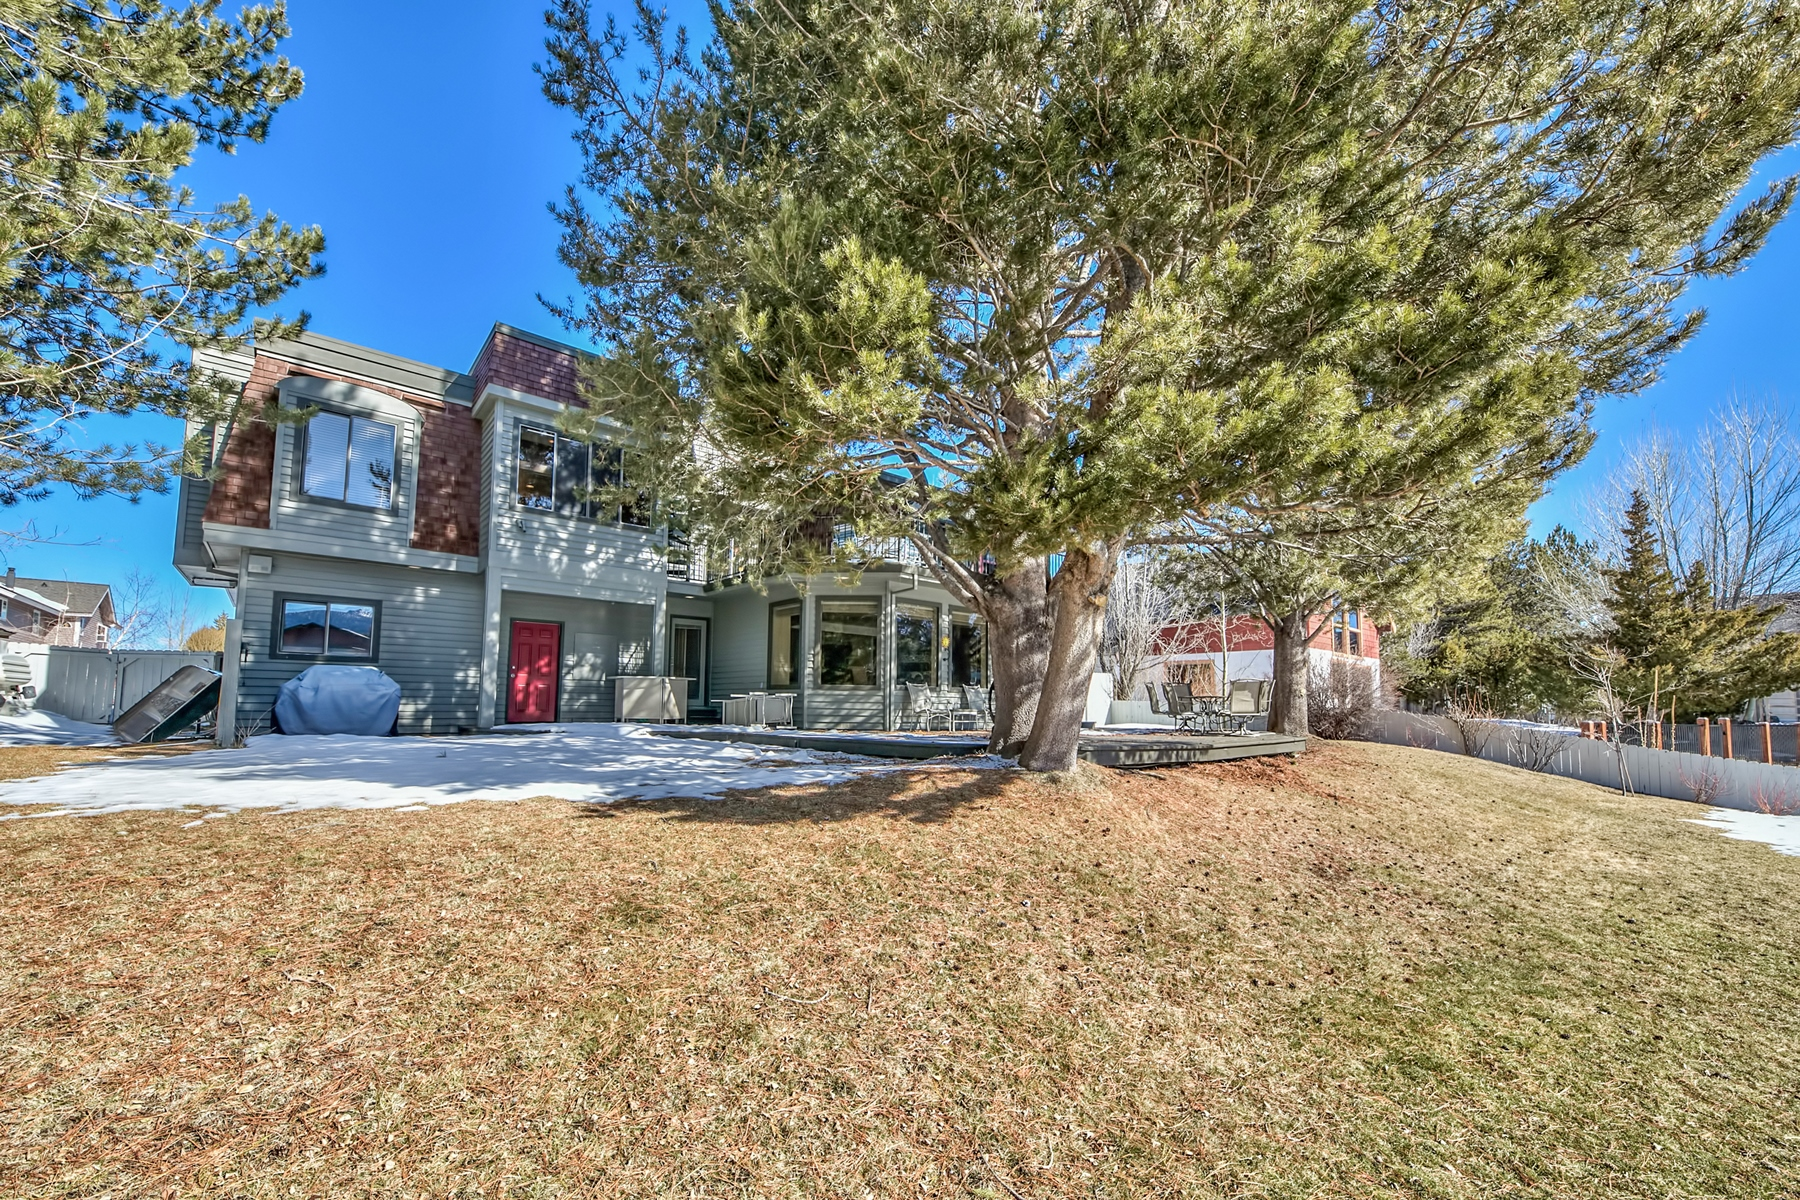 Additional photo for property listing at 2240 Balboa Drive, South Lake Tahoe CA 96150 2240 Balboa Drive South Lake Tahoe, California 96150 United States